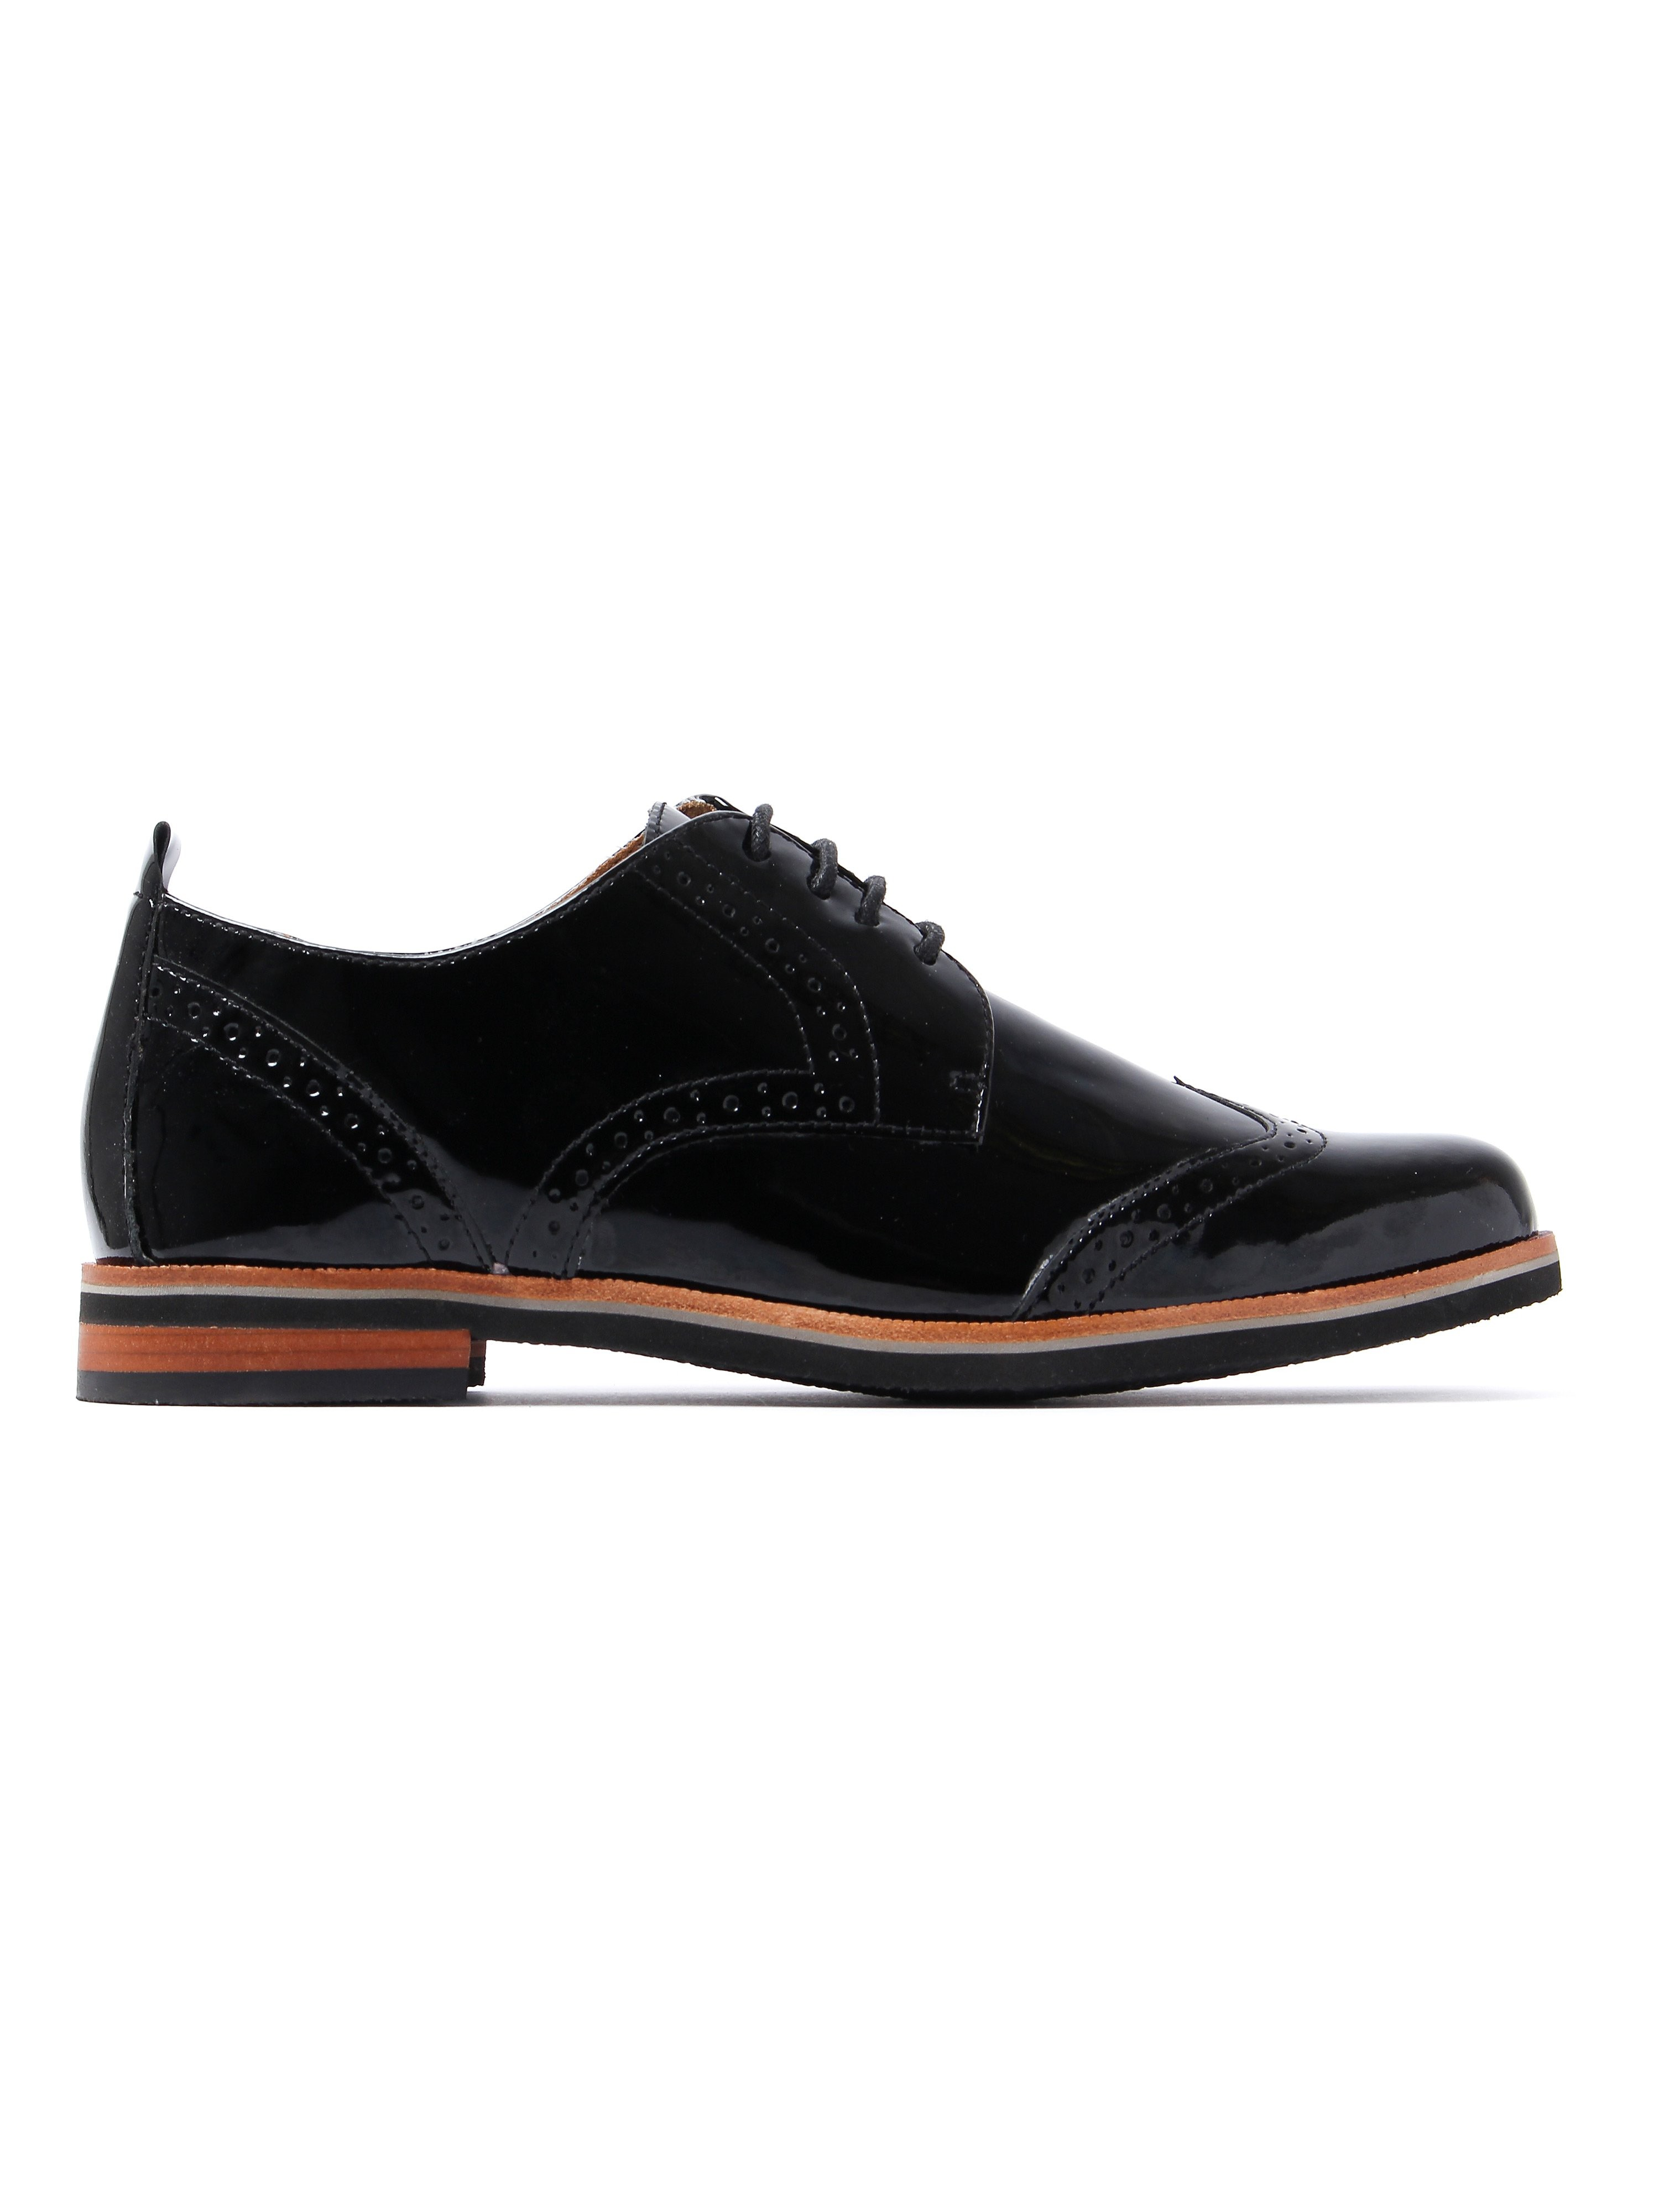 Caprice Women's Brogues - Black Patent